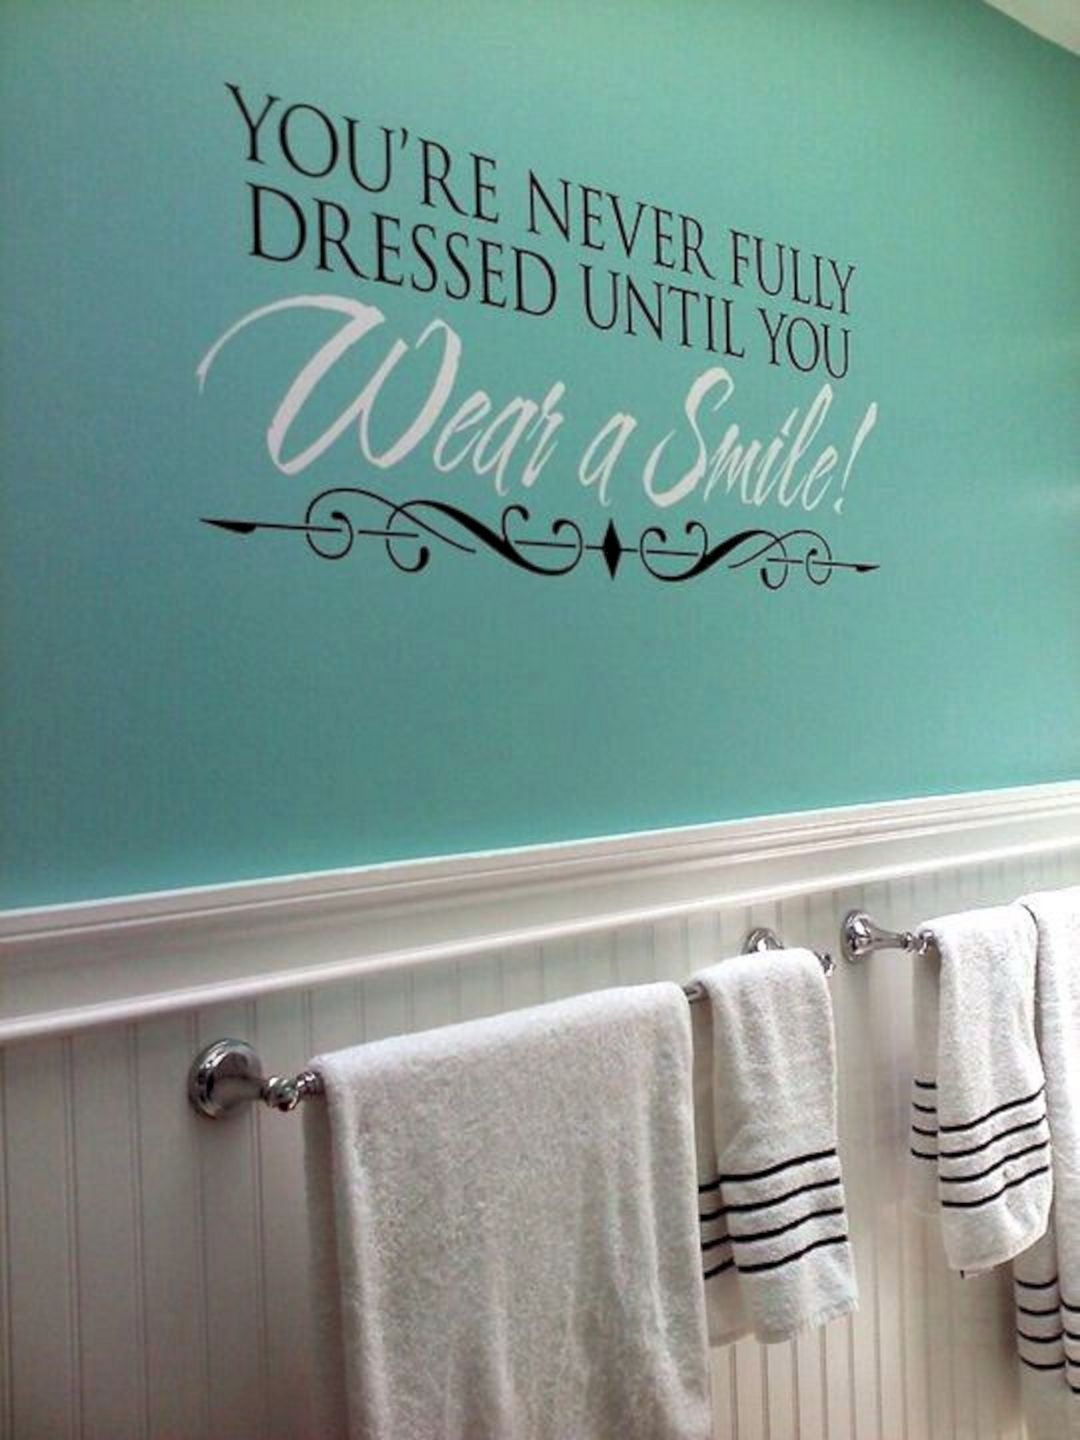 30 Most Wonderful Quotes Beach Bathroom Decor For Inspiration images